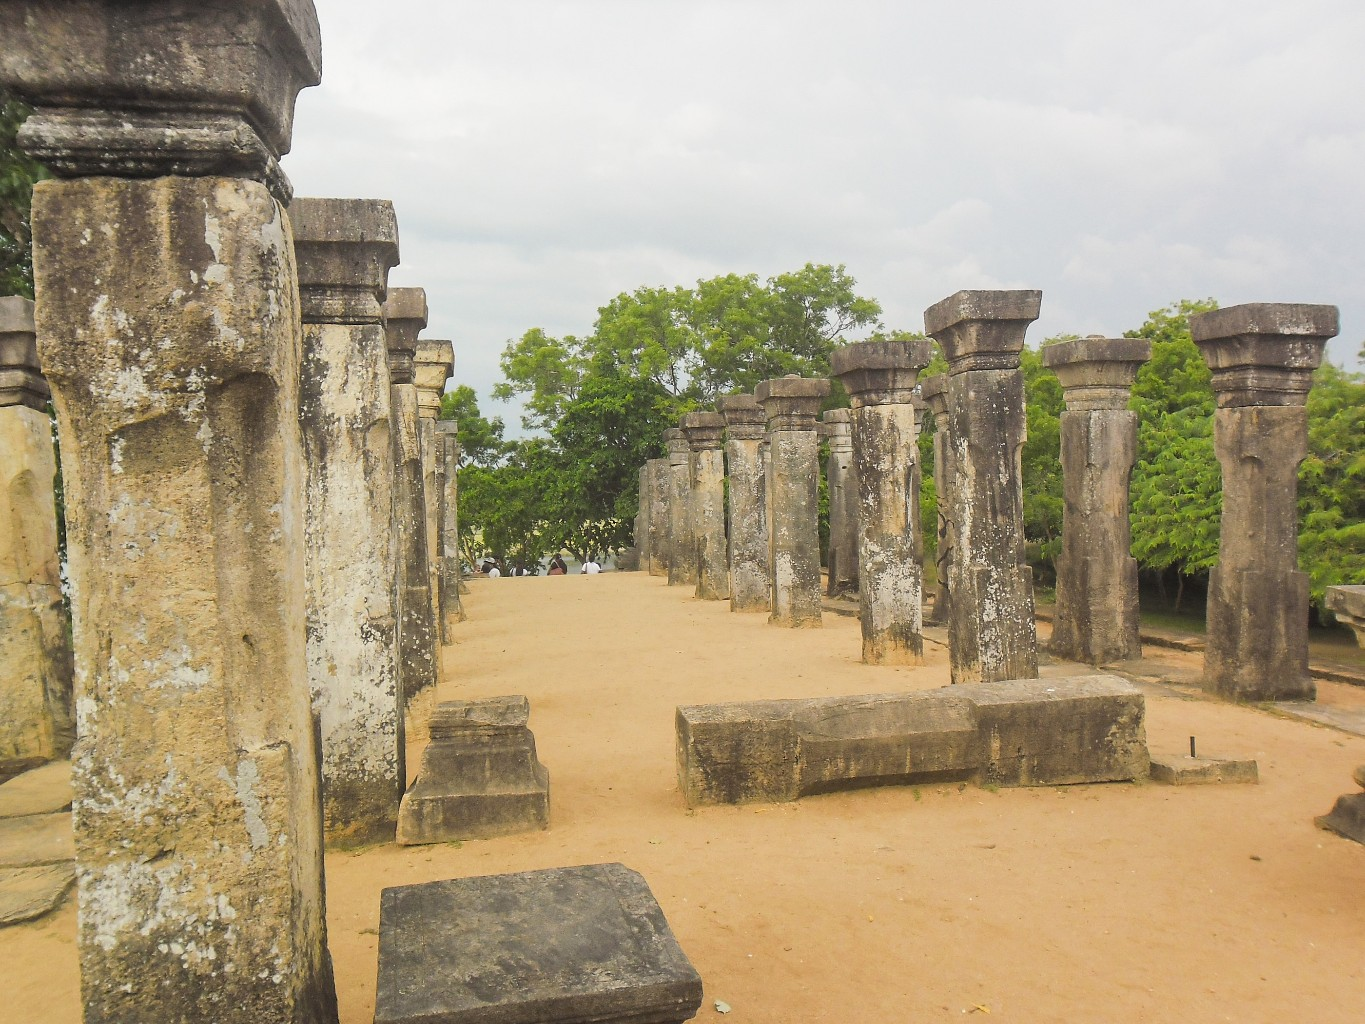 Council-Chamber-of-Nissankamalla-Ancient-City-of-Polonnaruwa-12